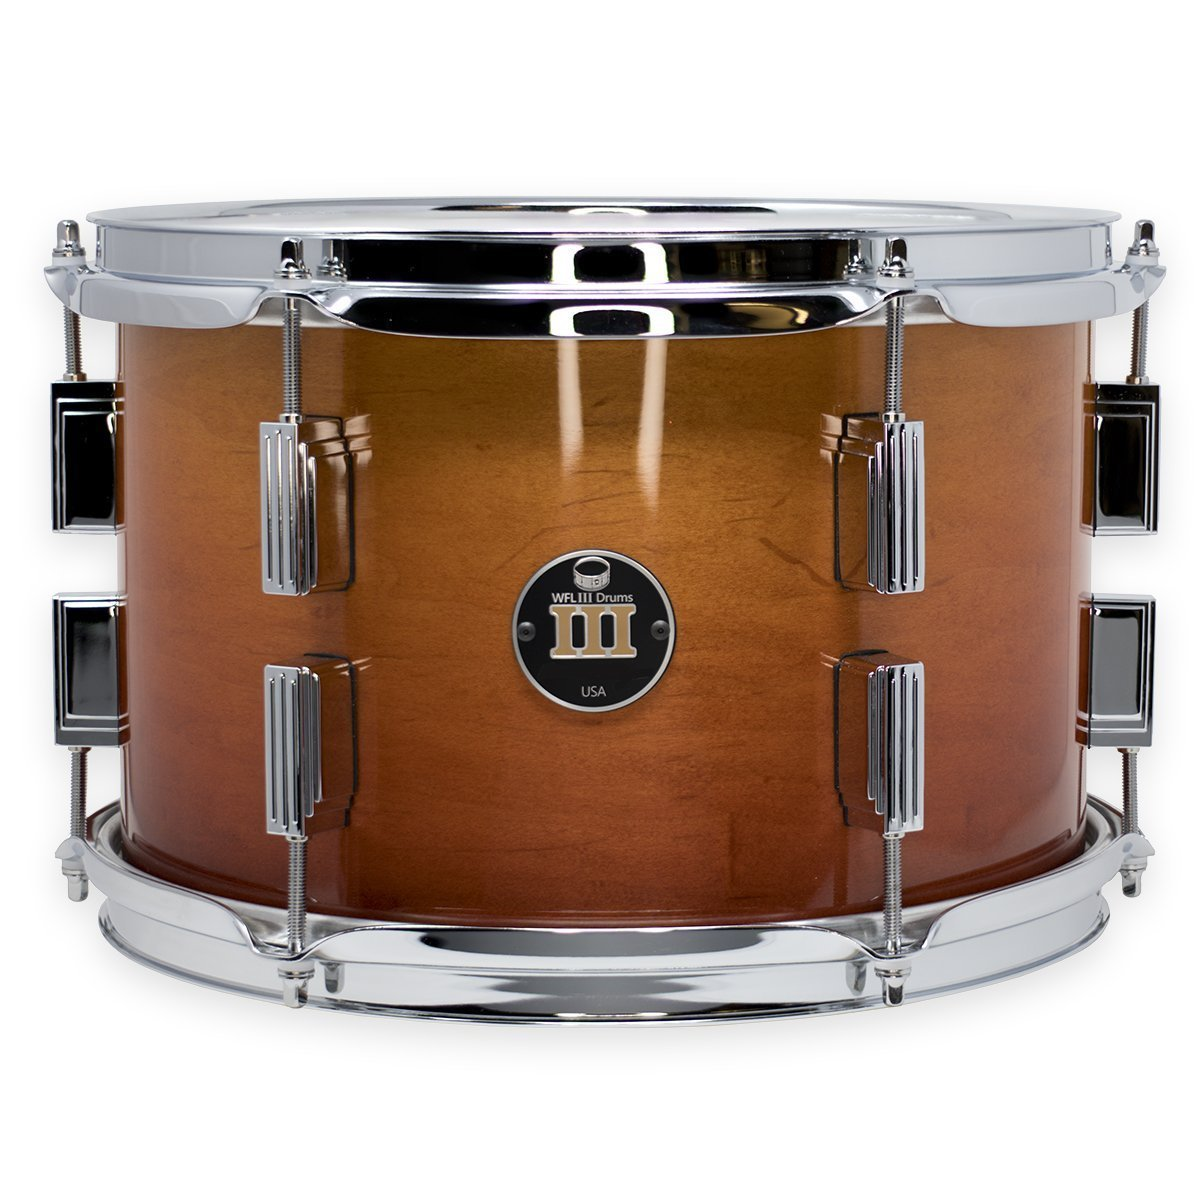 8″ x 10″ Generations Maple Tom